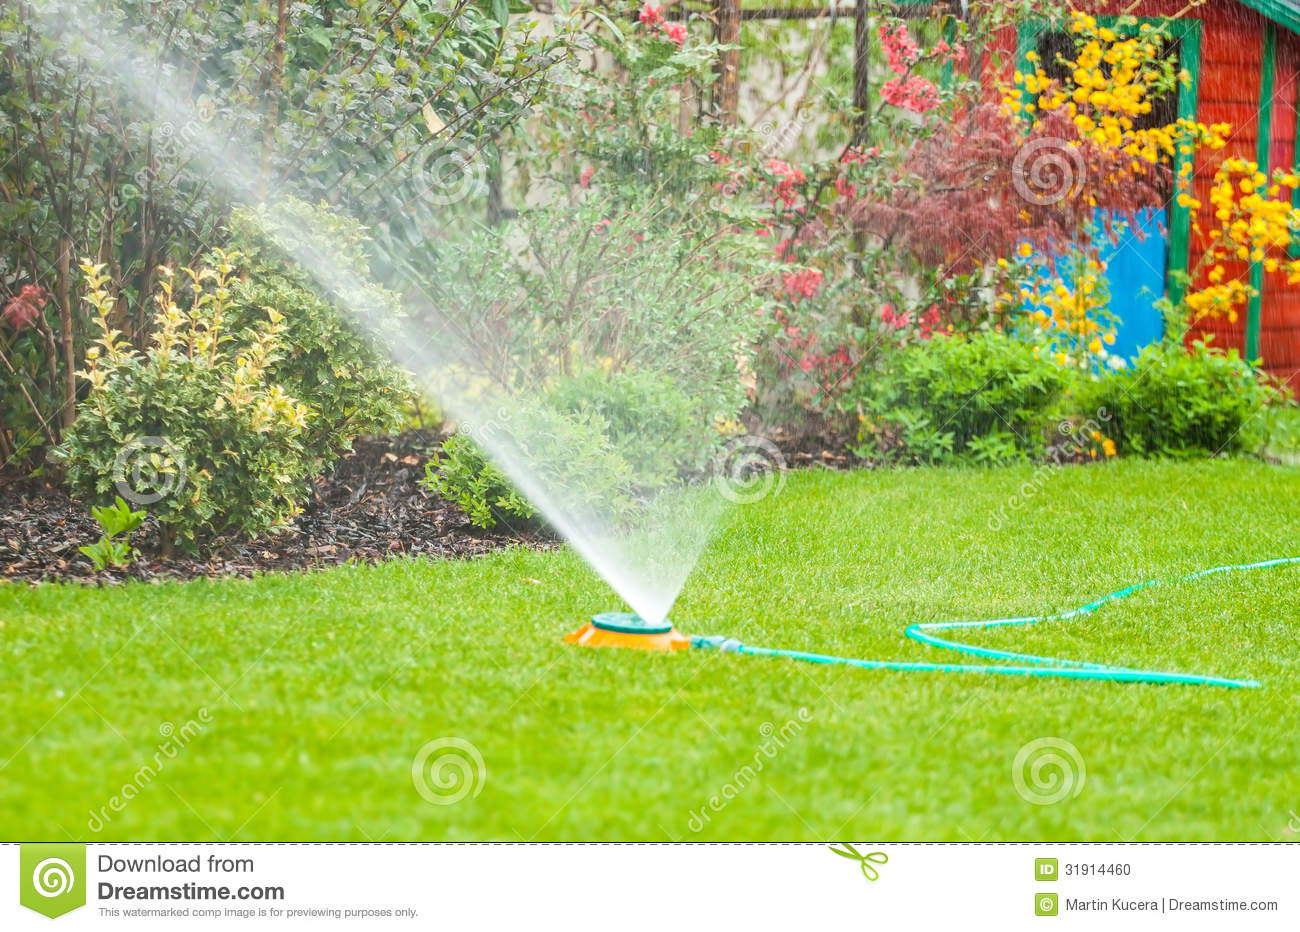 Water Sprinkler Spraying Water Over Green Grass In The